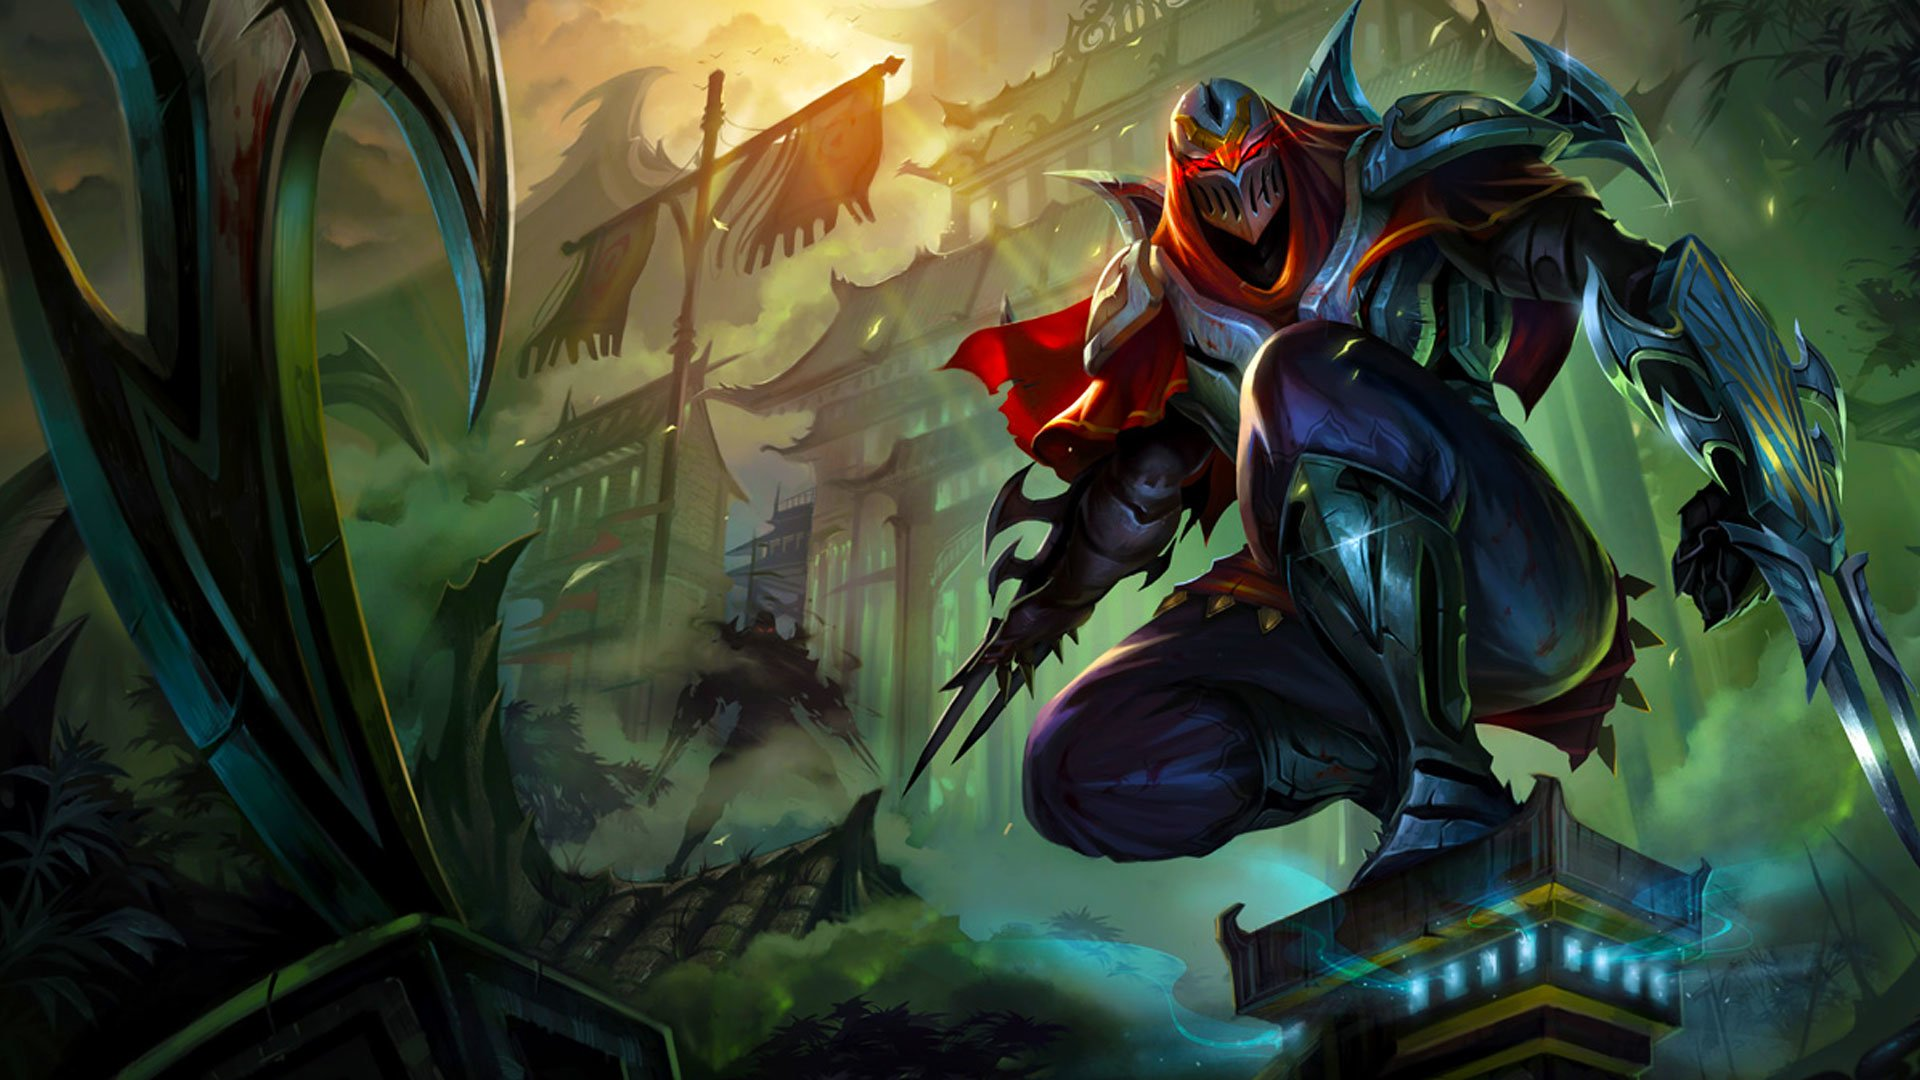 71 Zed League Of Legends Hd Wallpapers Background Images